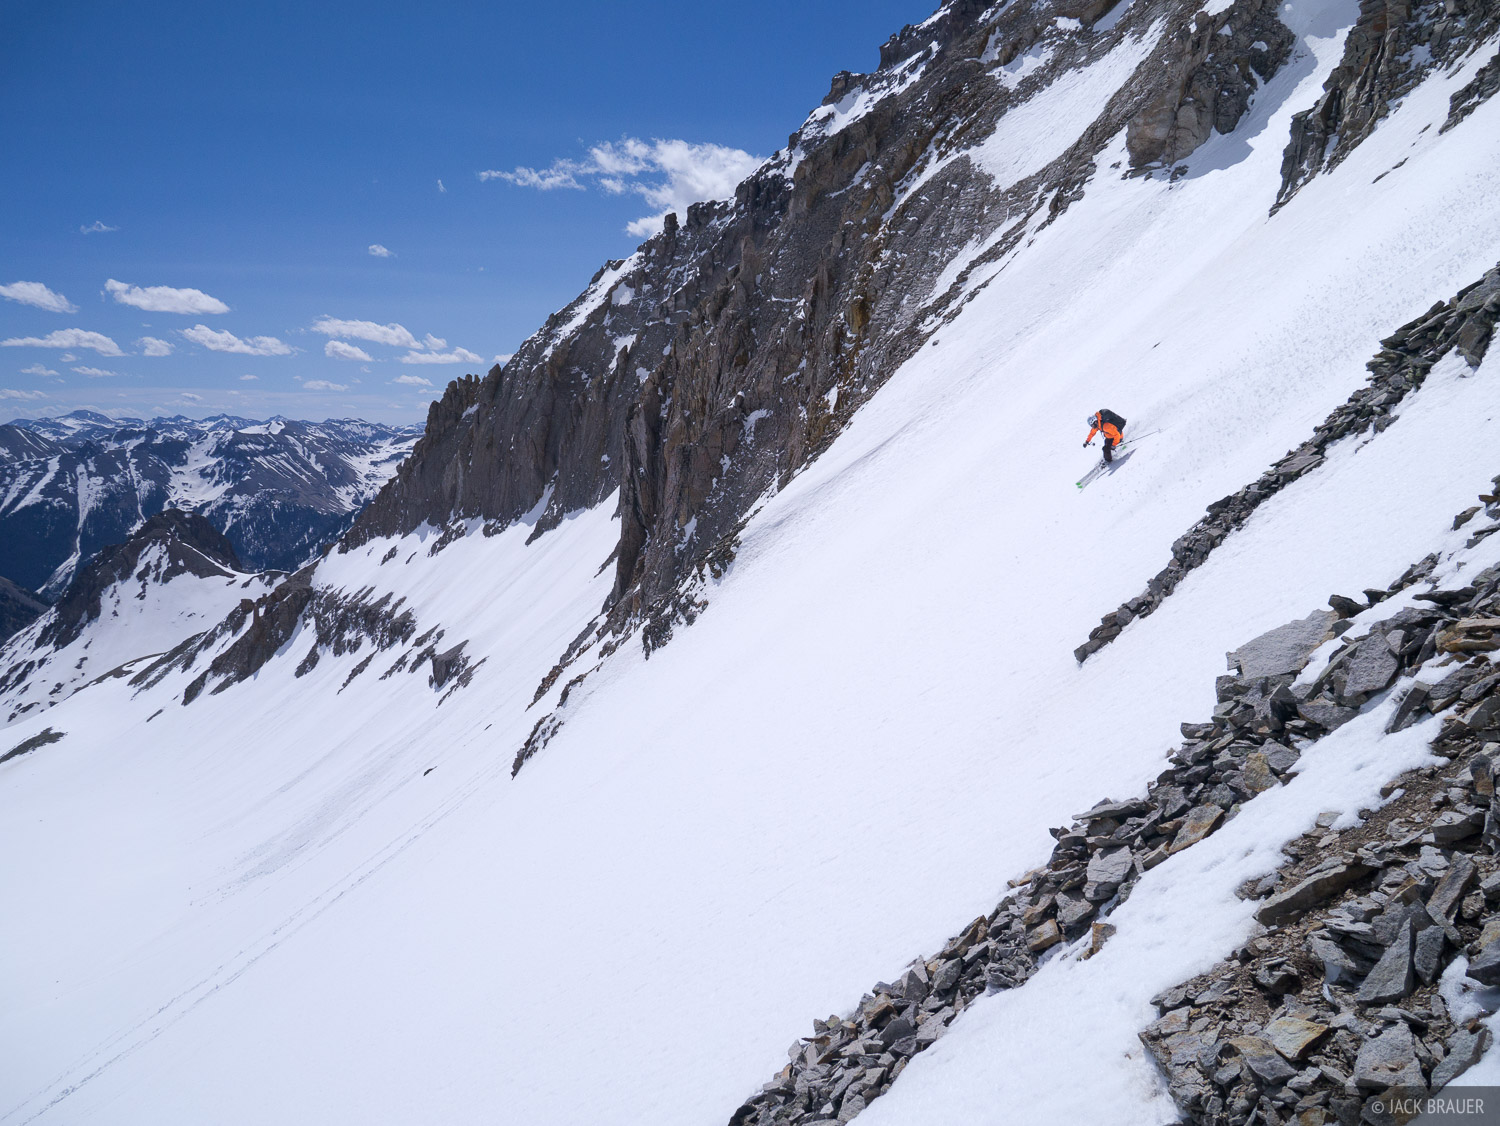 Colorado,Gilpin Peak,San Juan Mountains,Sneffels Range, skiing, Jake Evans, May, photo